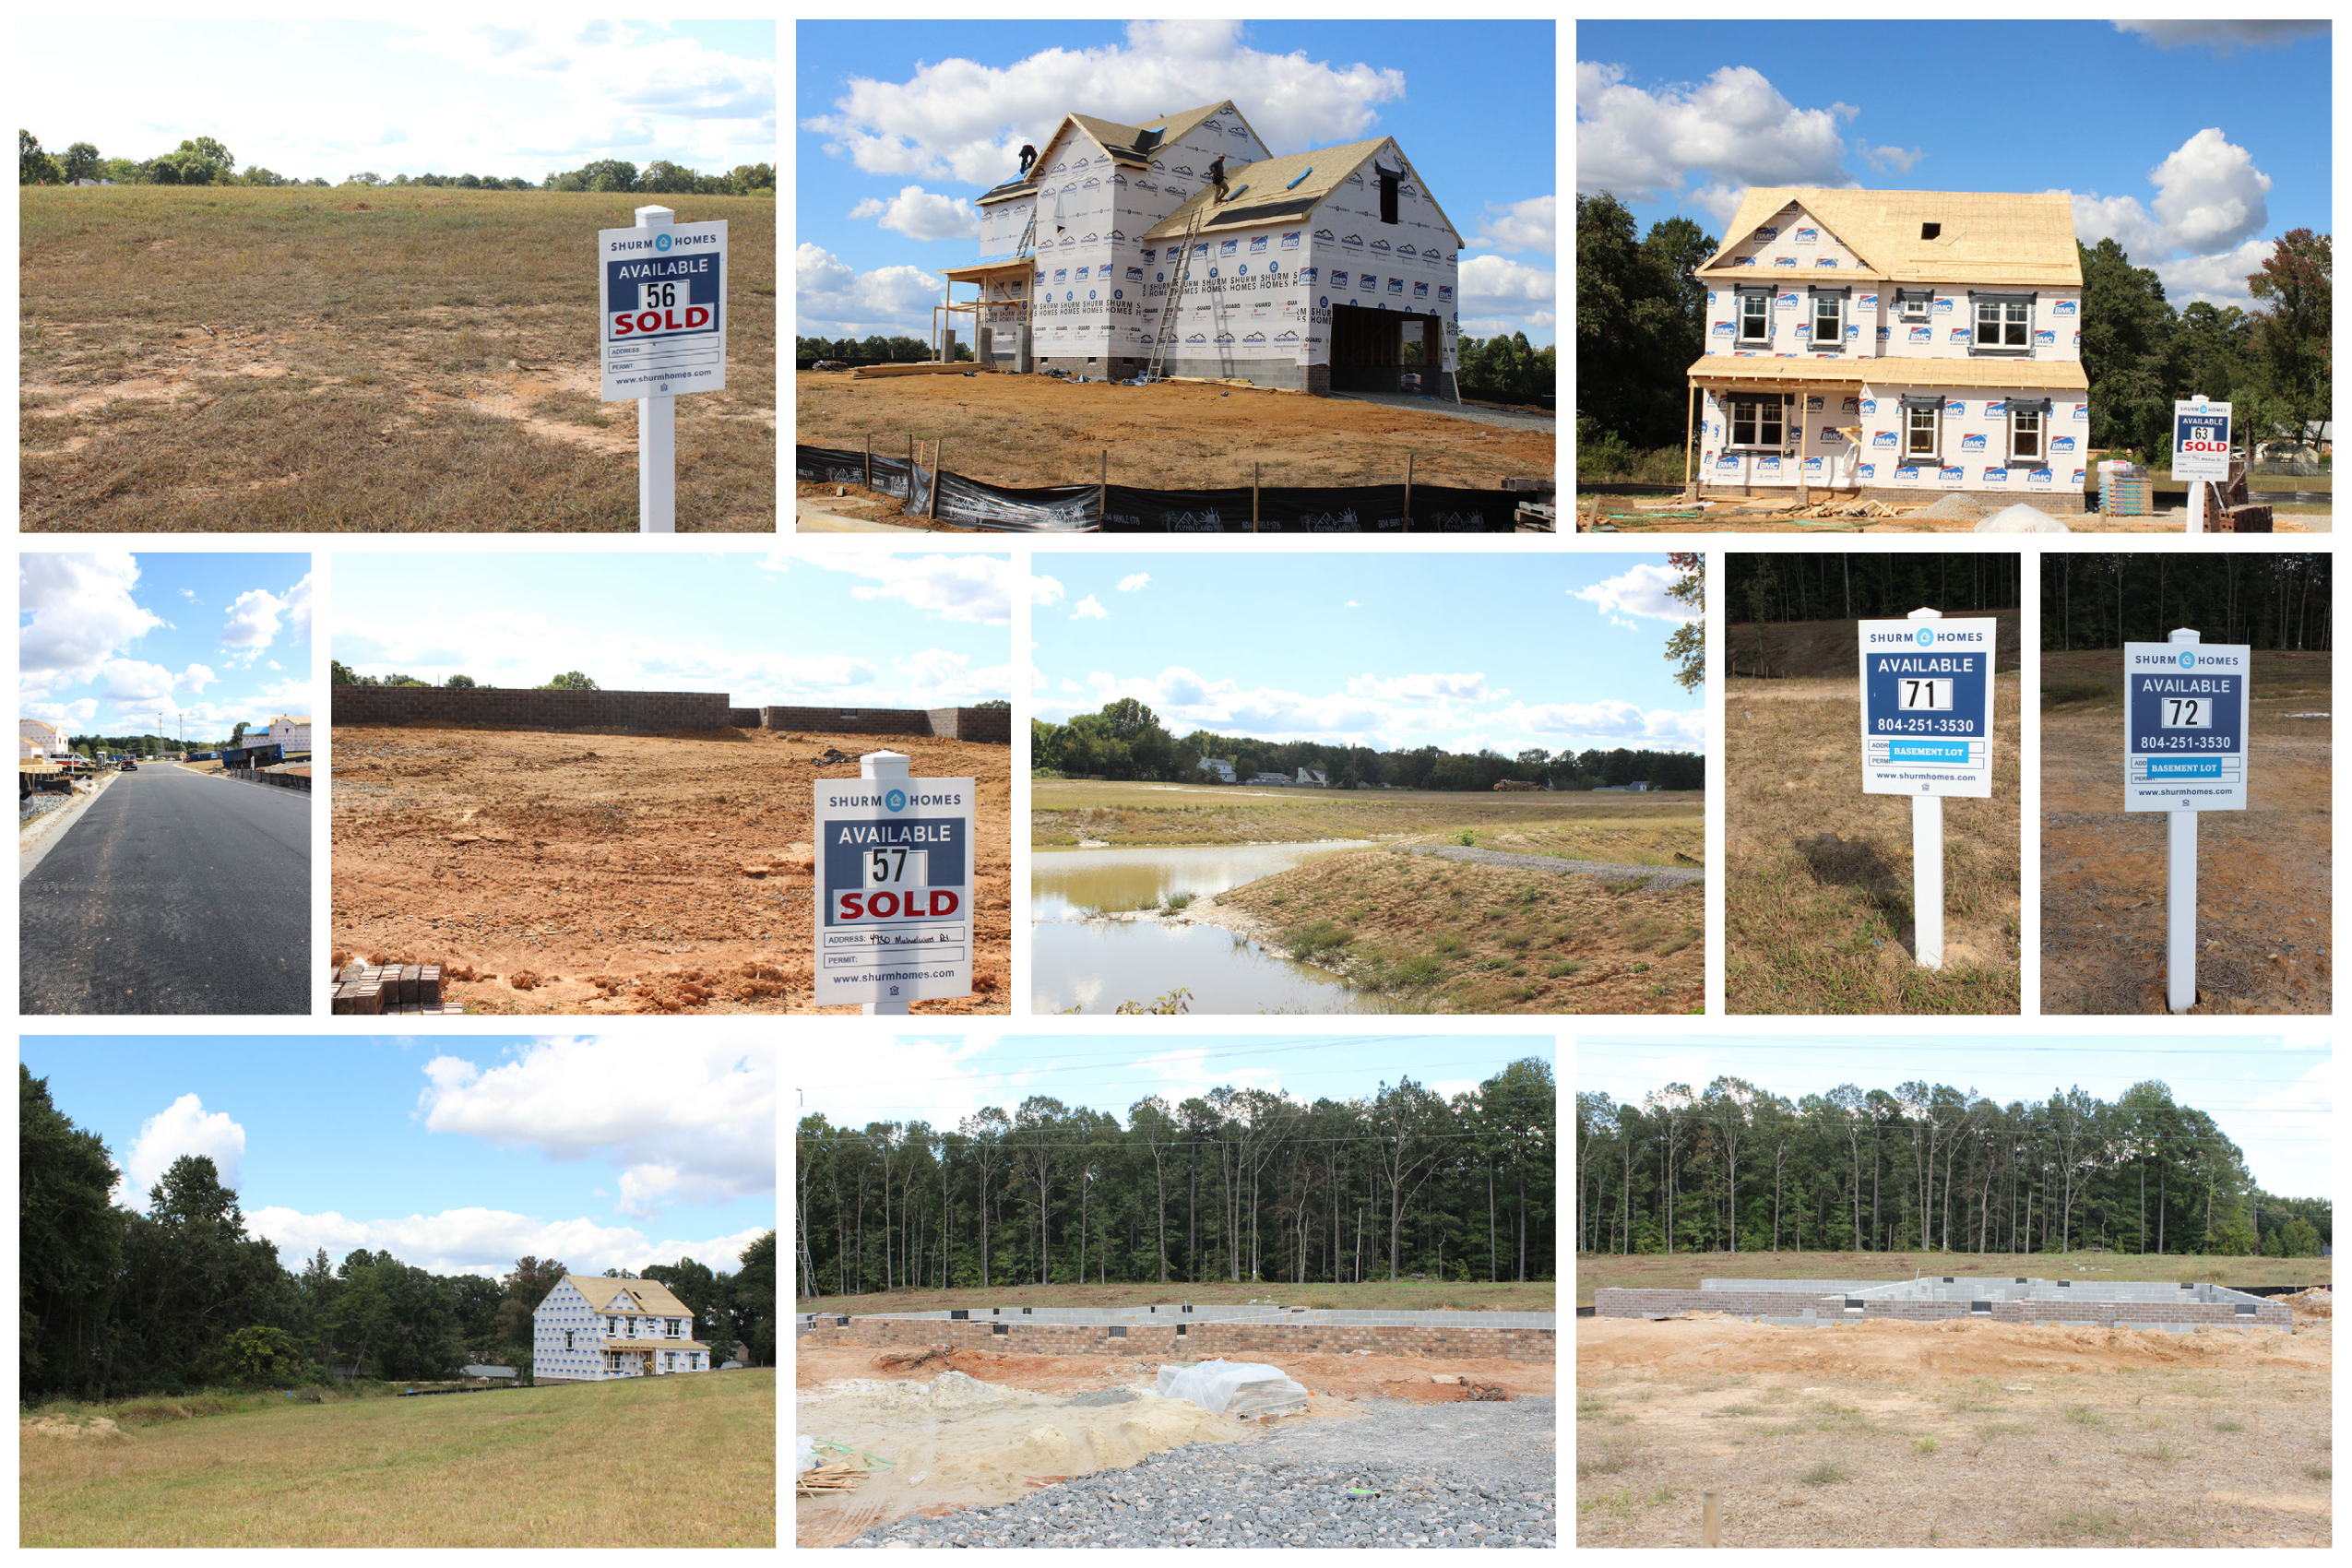 Pennwood Estates Update!